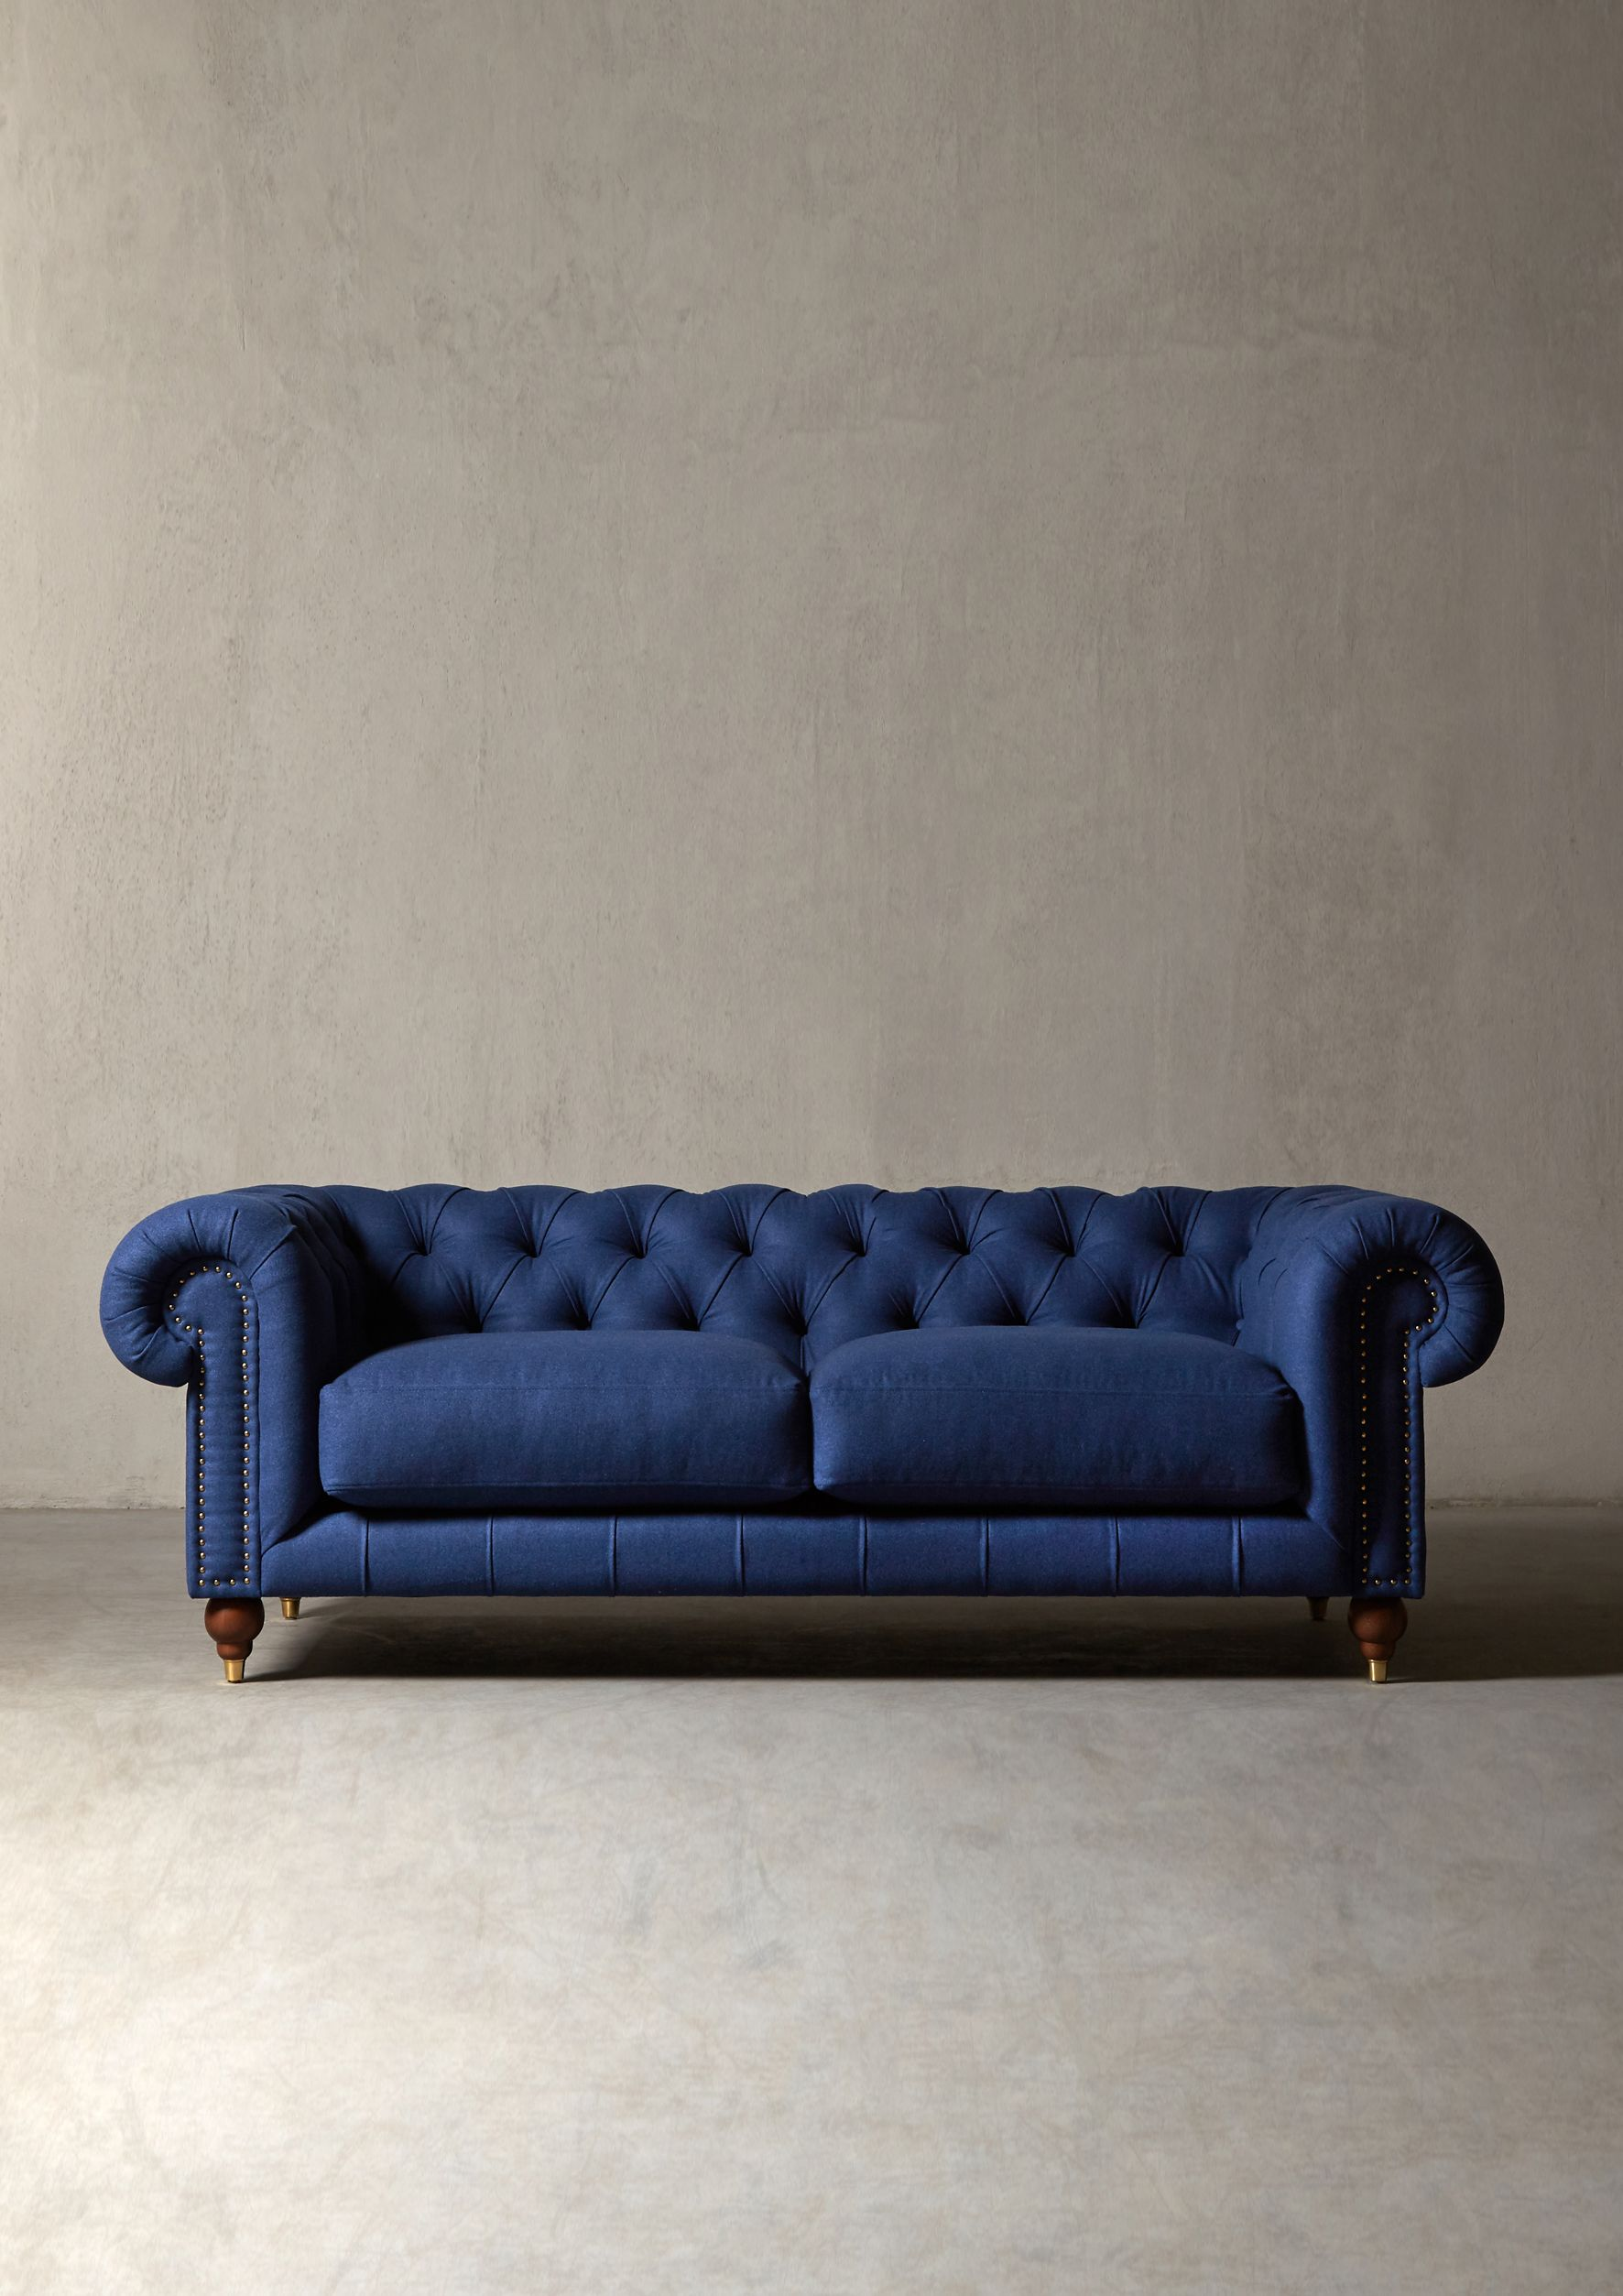 The Winston Sofa In Midnight Wool Swoon Editions Swooneditions Chesterfieldsofa Bluesofa